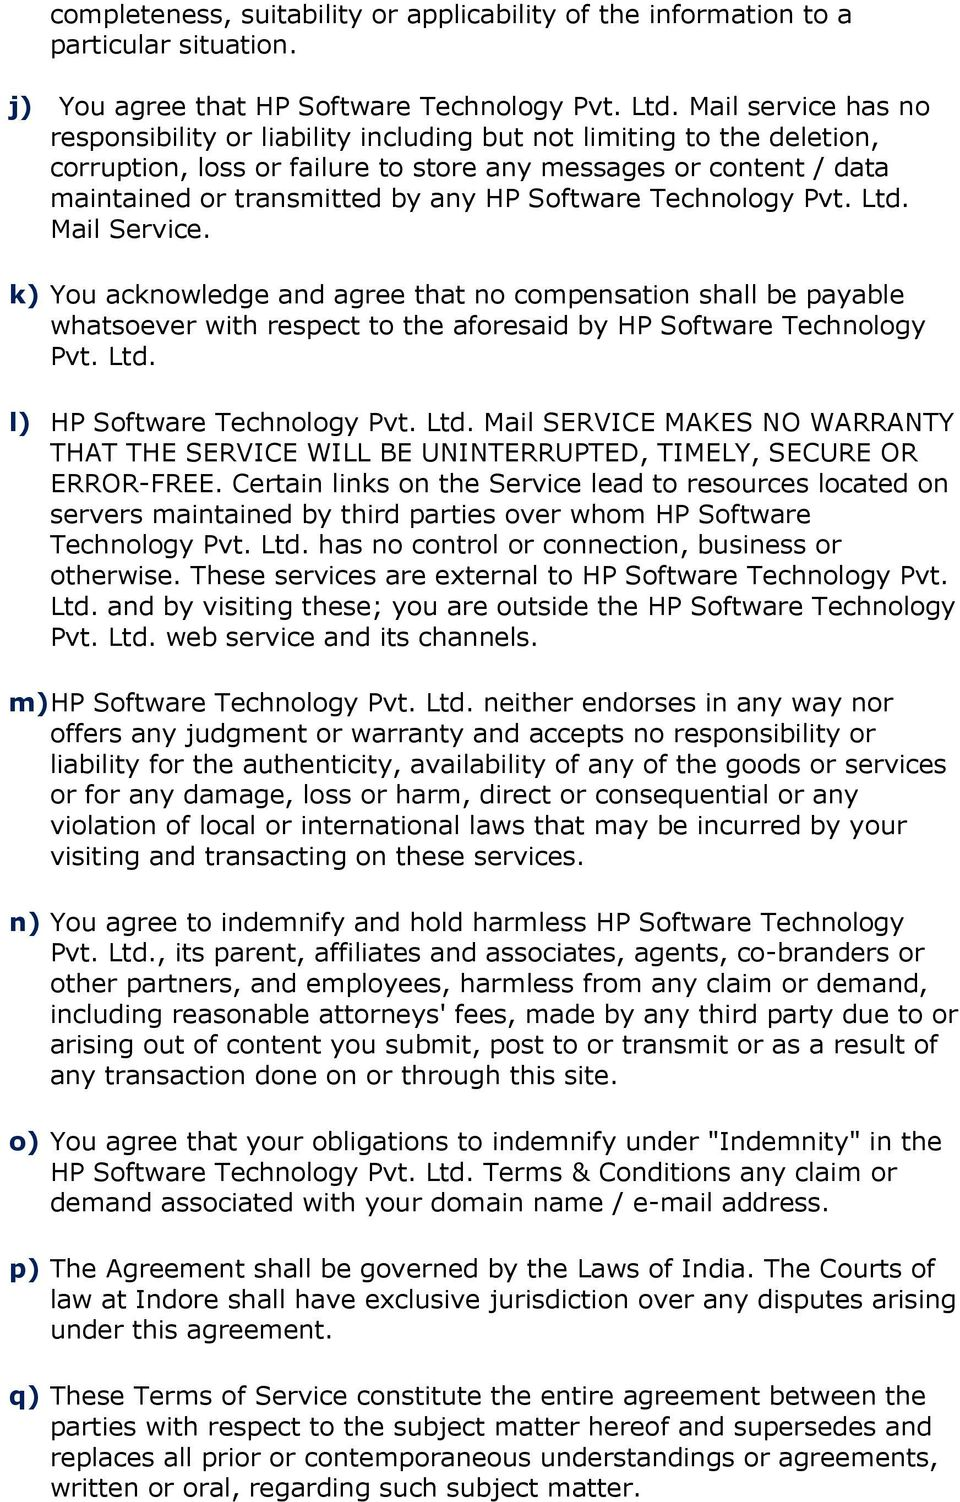 Software Technology Pvt. Ltd. Mail Service. k) You acknowledge and agree that no compensation shall be payable whatsoever with respect to the aforesaid by HP Software Technology Pvt. Ltd. l) HP Software Technology Pvt.